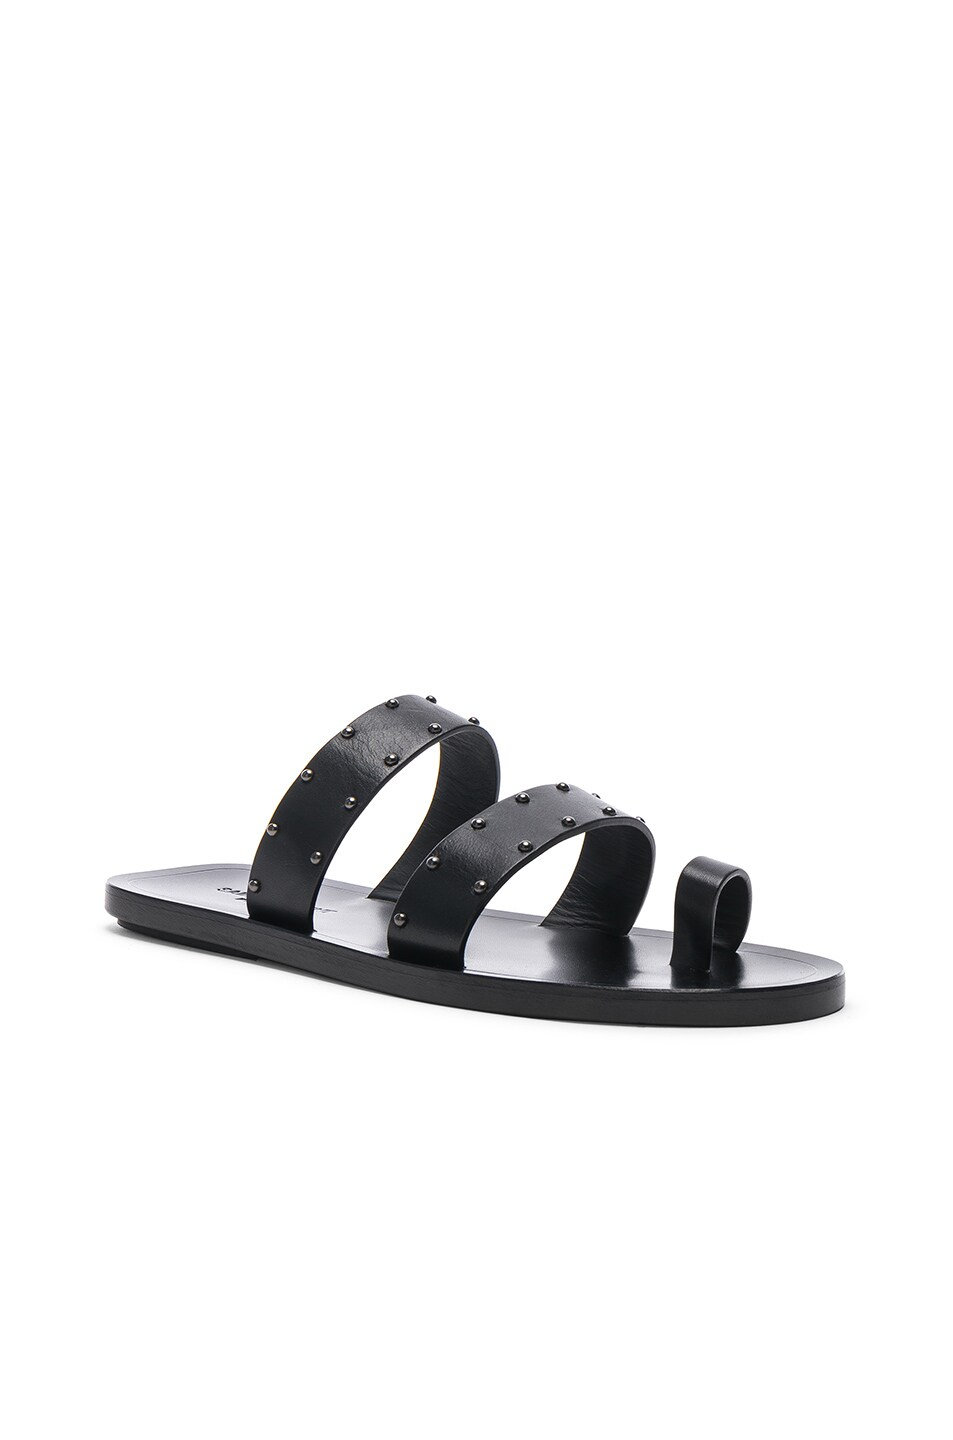 Image 2 of Saint Laurent Ashton Stud Sandals in Black